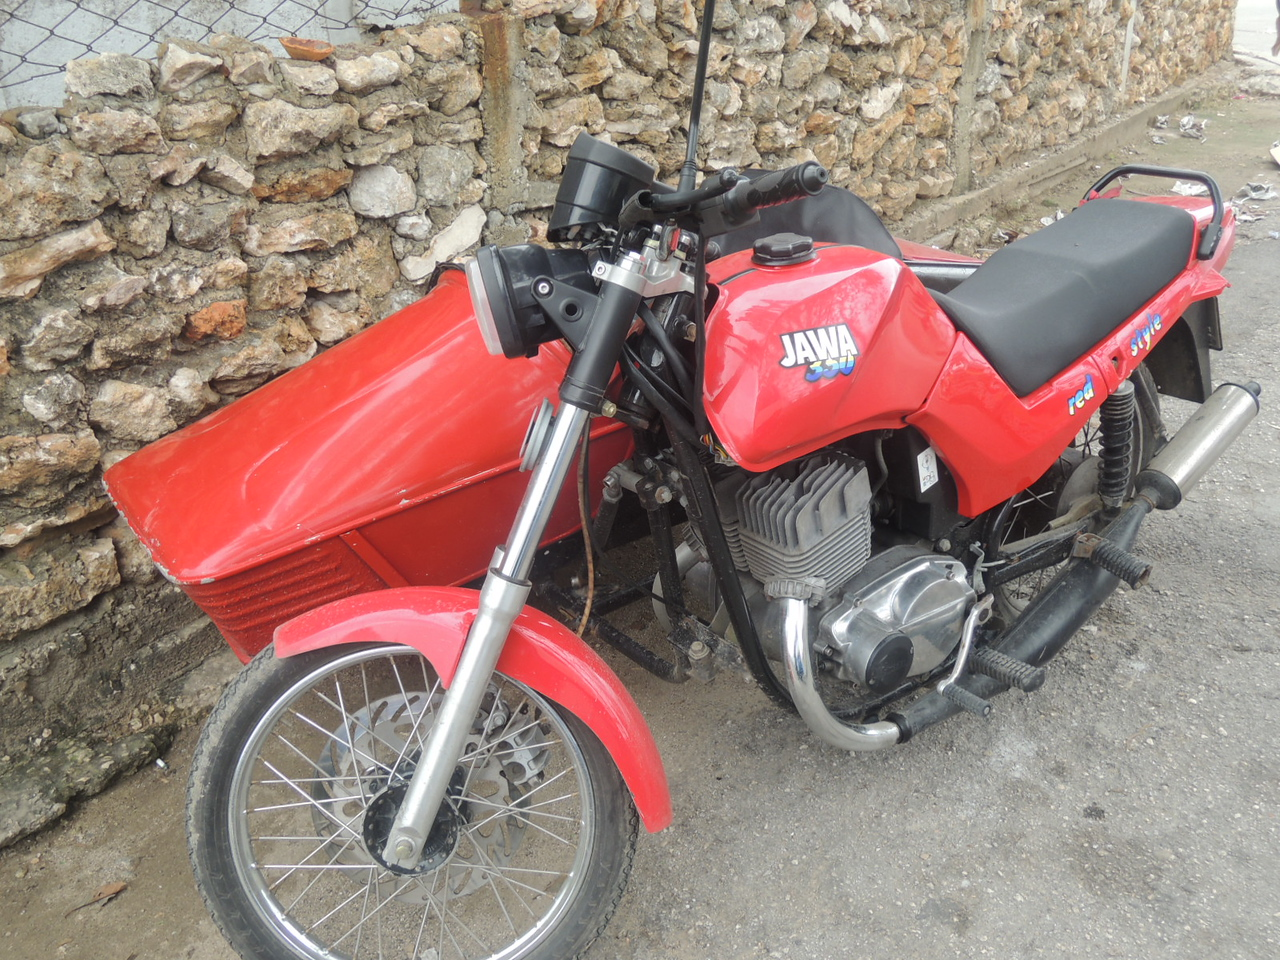 A 350 Jawa with a sidecar and the only expansion chamber exhaust system I saw in Cuba.